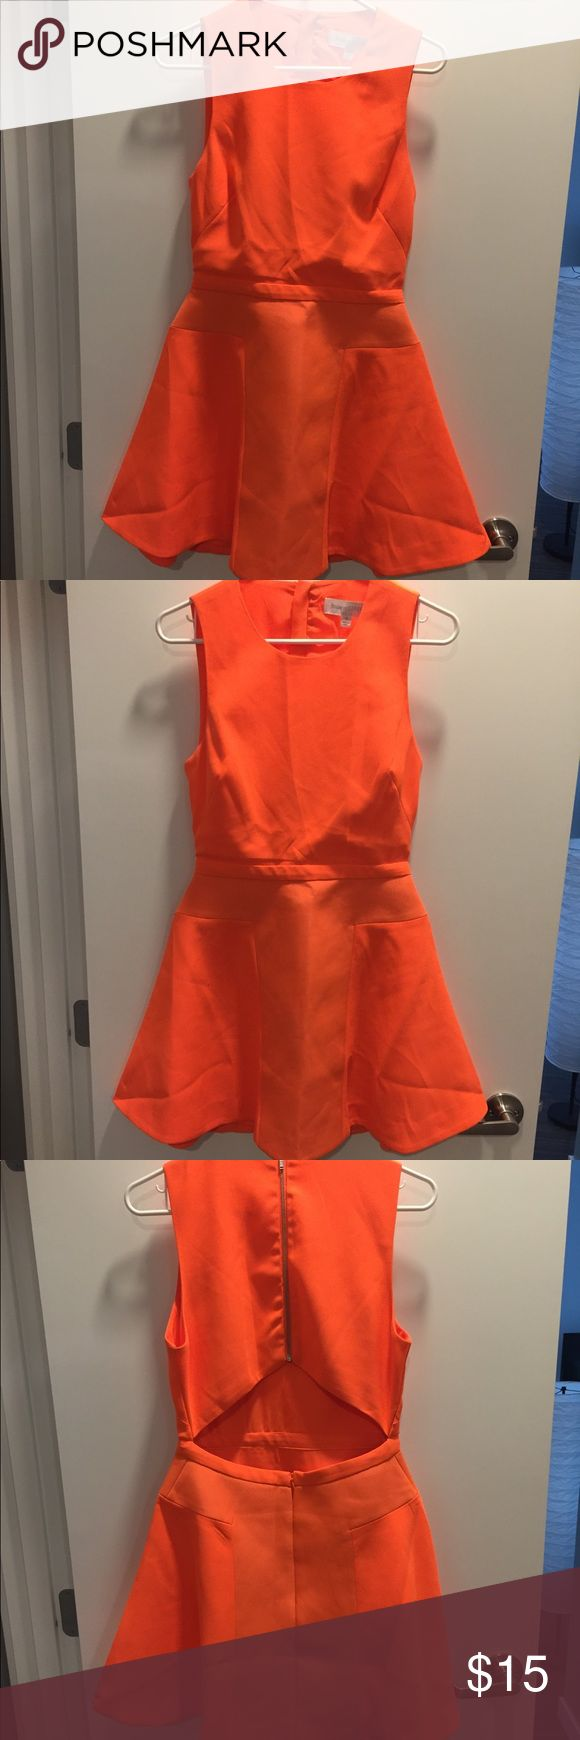 Neon orange mini with back cutout detail Excuse the slight wrinkles, but super cute and fun bright orange party dress! Back has cutout triangle below bra line. Really fun and festive dress! Great for a party or night on the town! Finders Keepers Dresses Mini